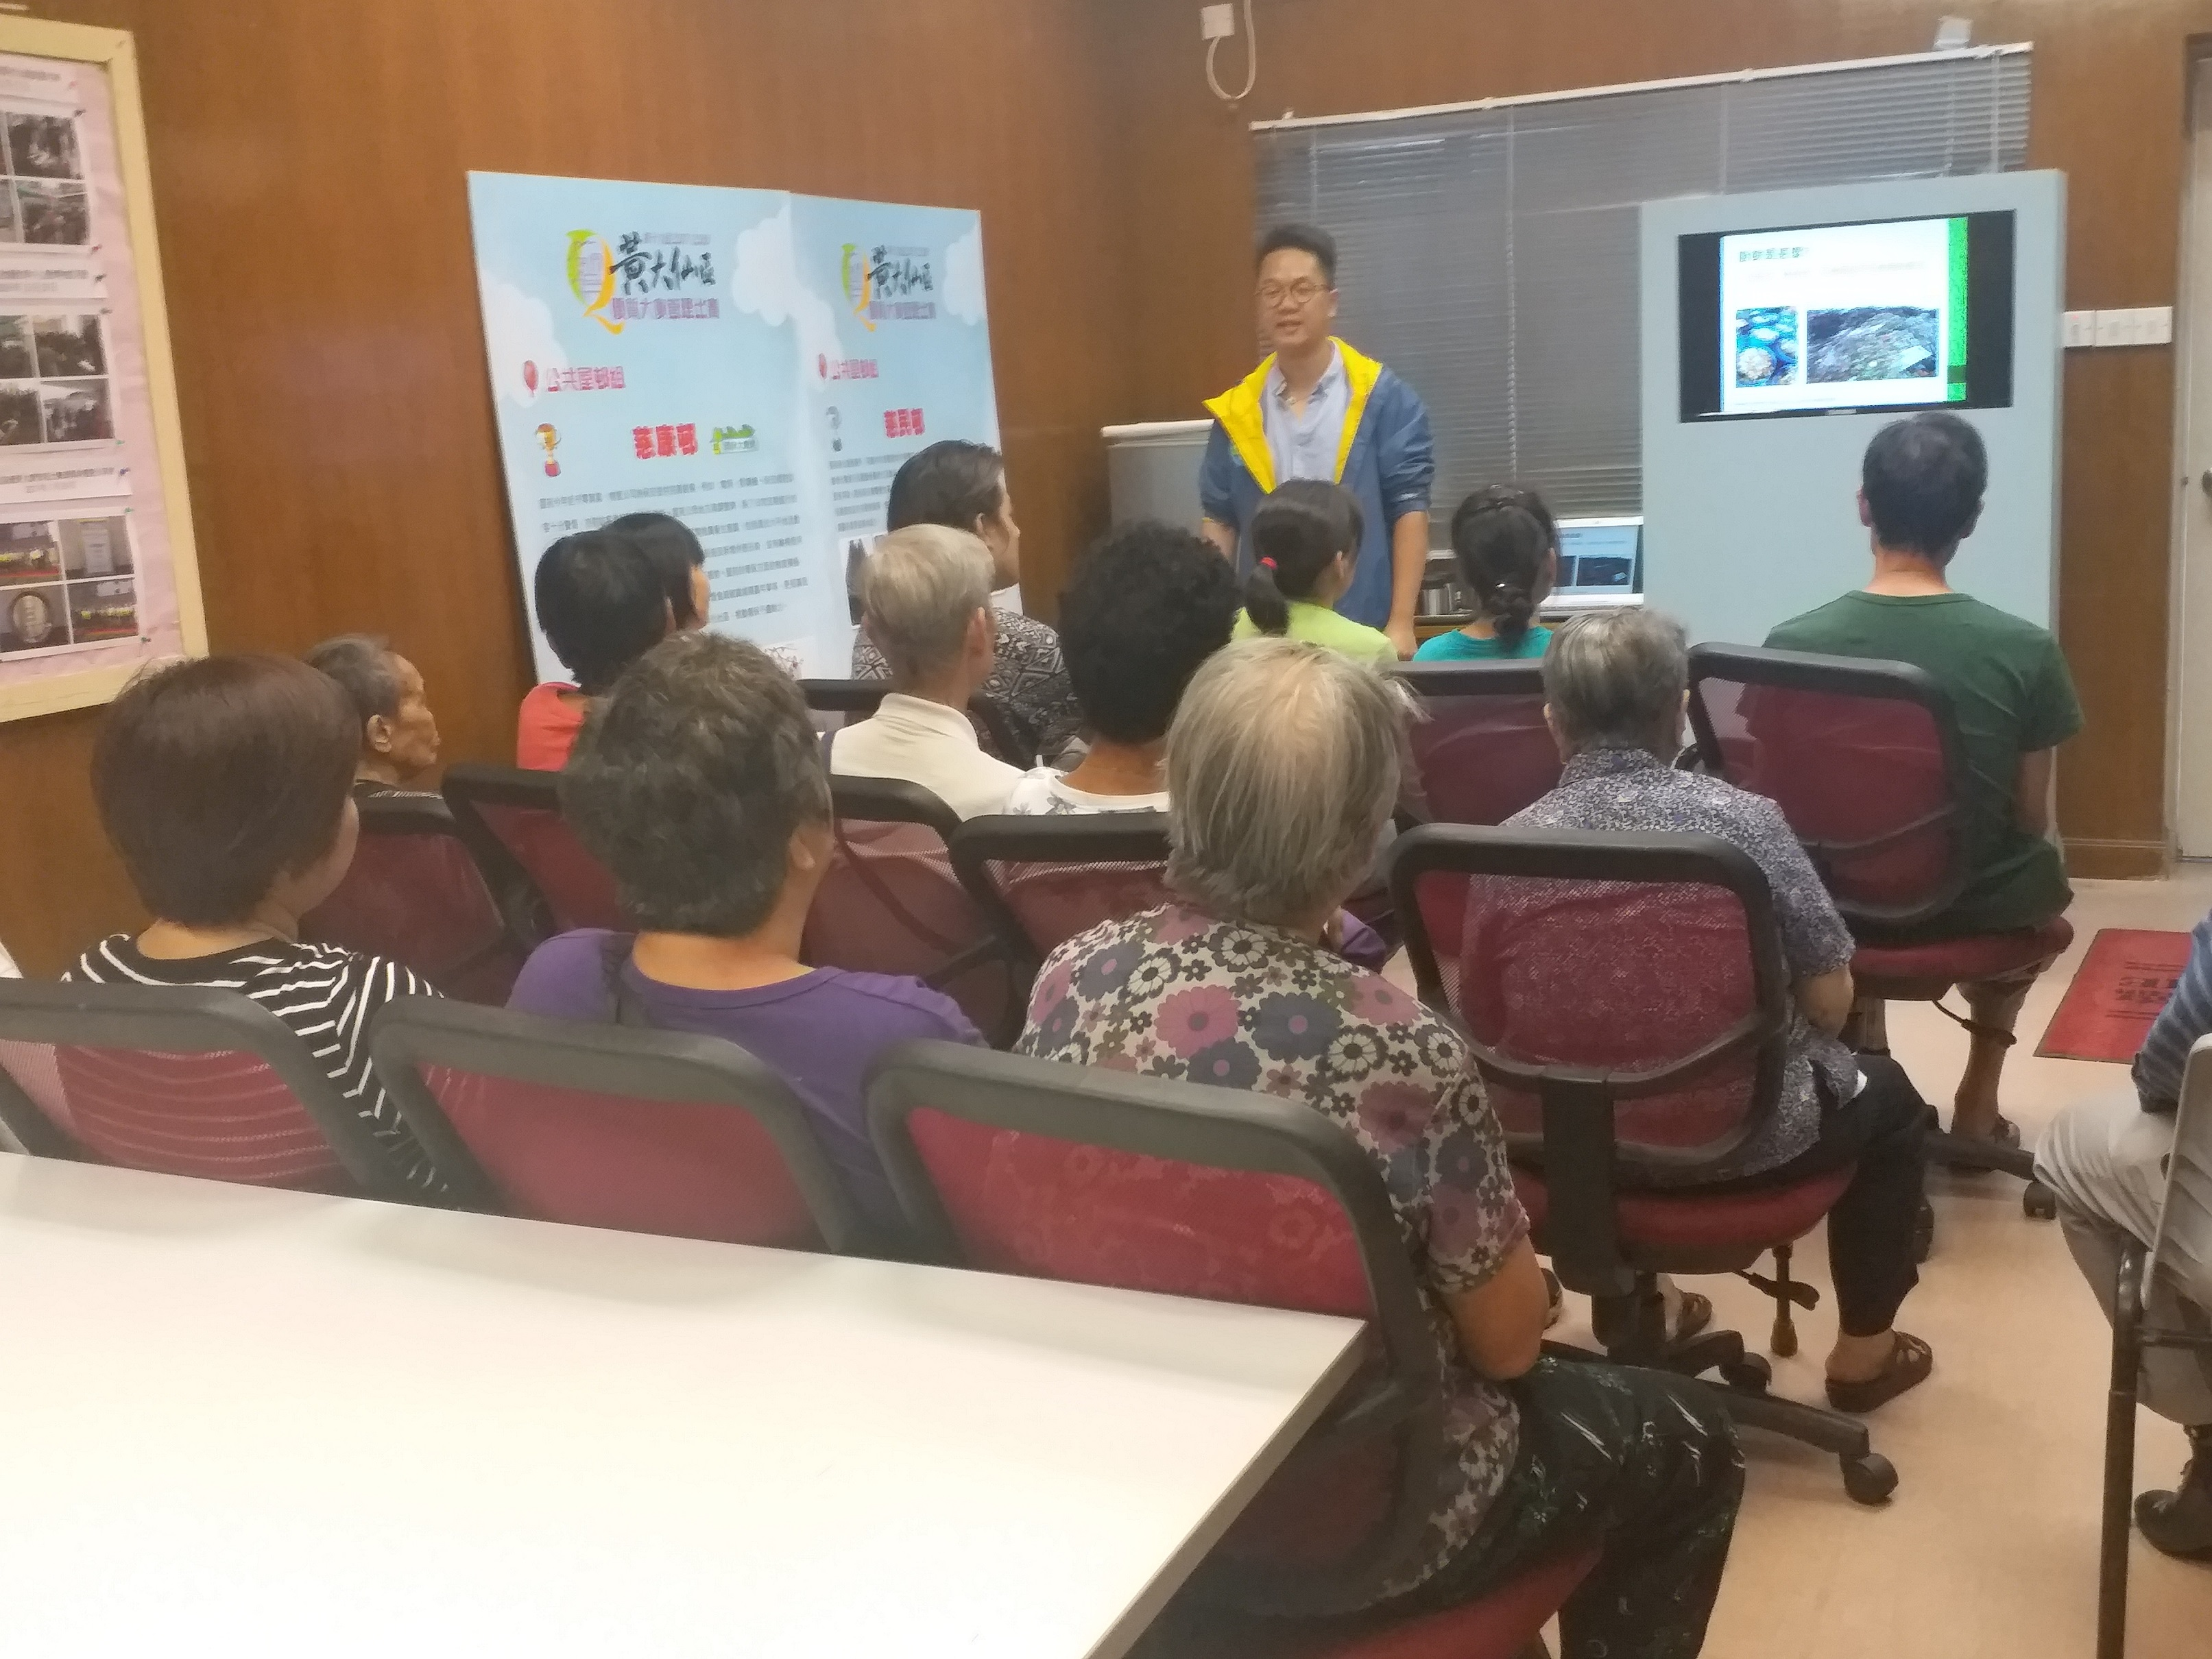 Speaker provided food waste information to participants in the talk